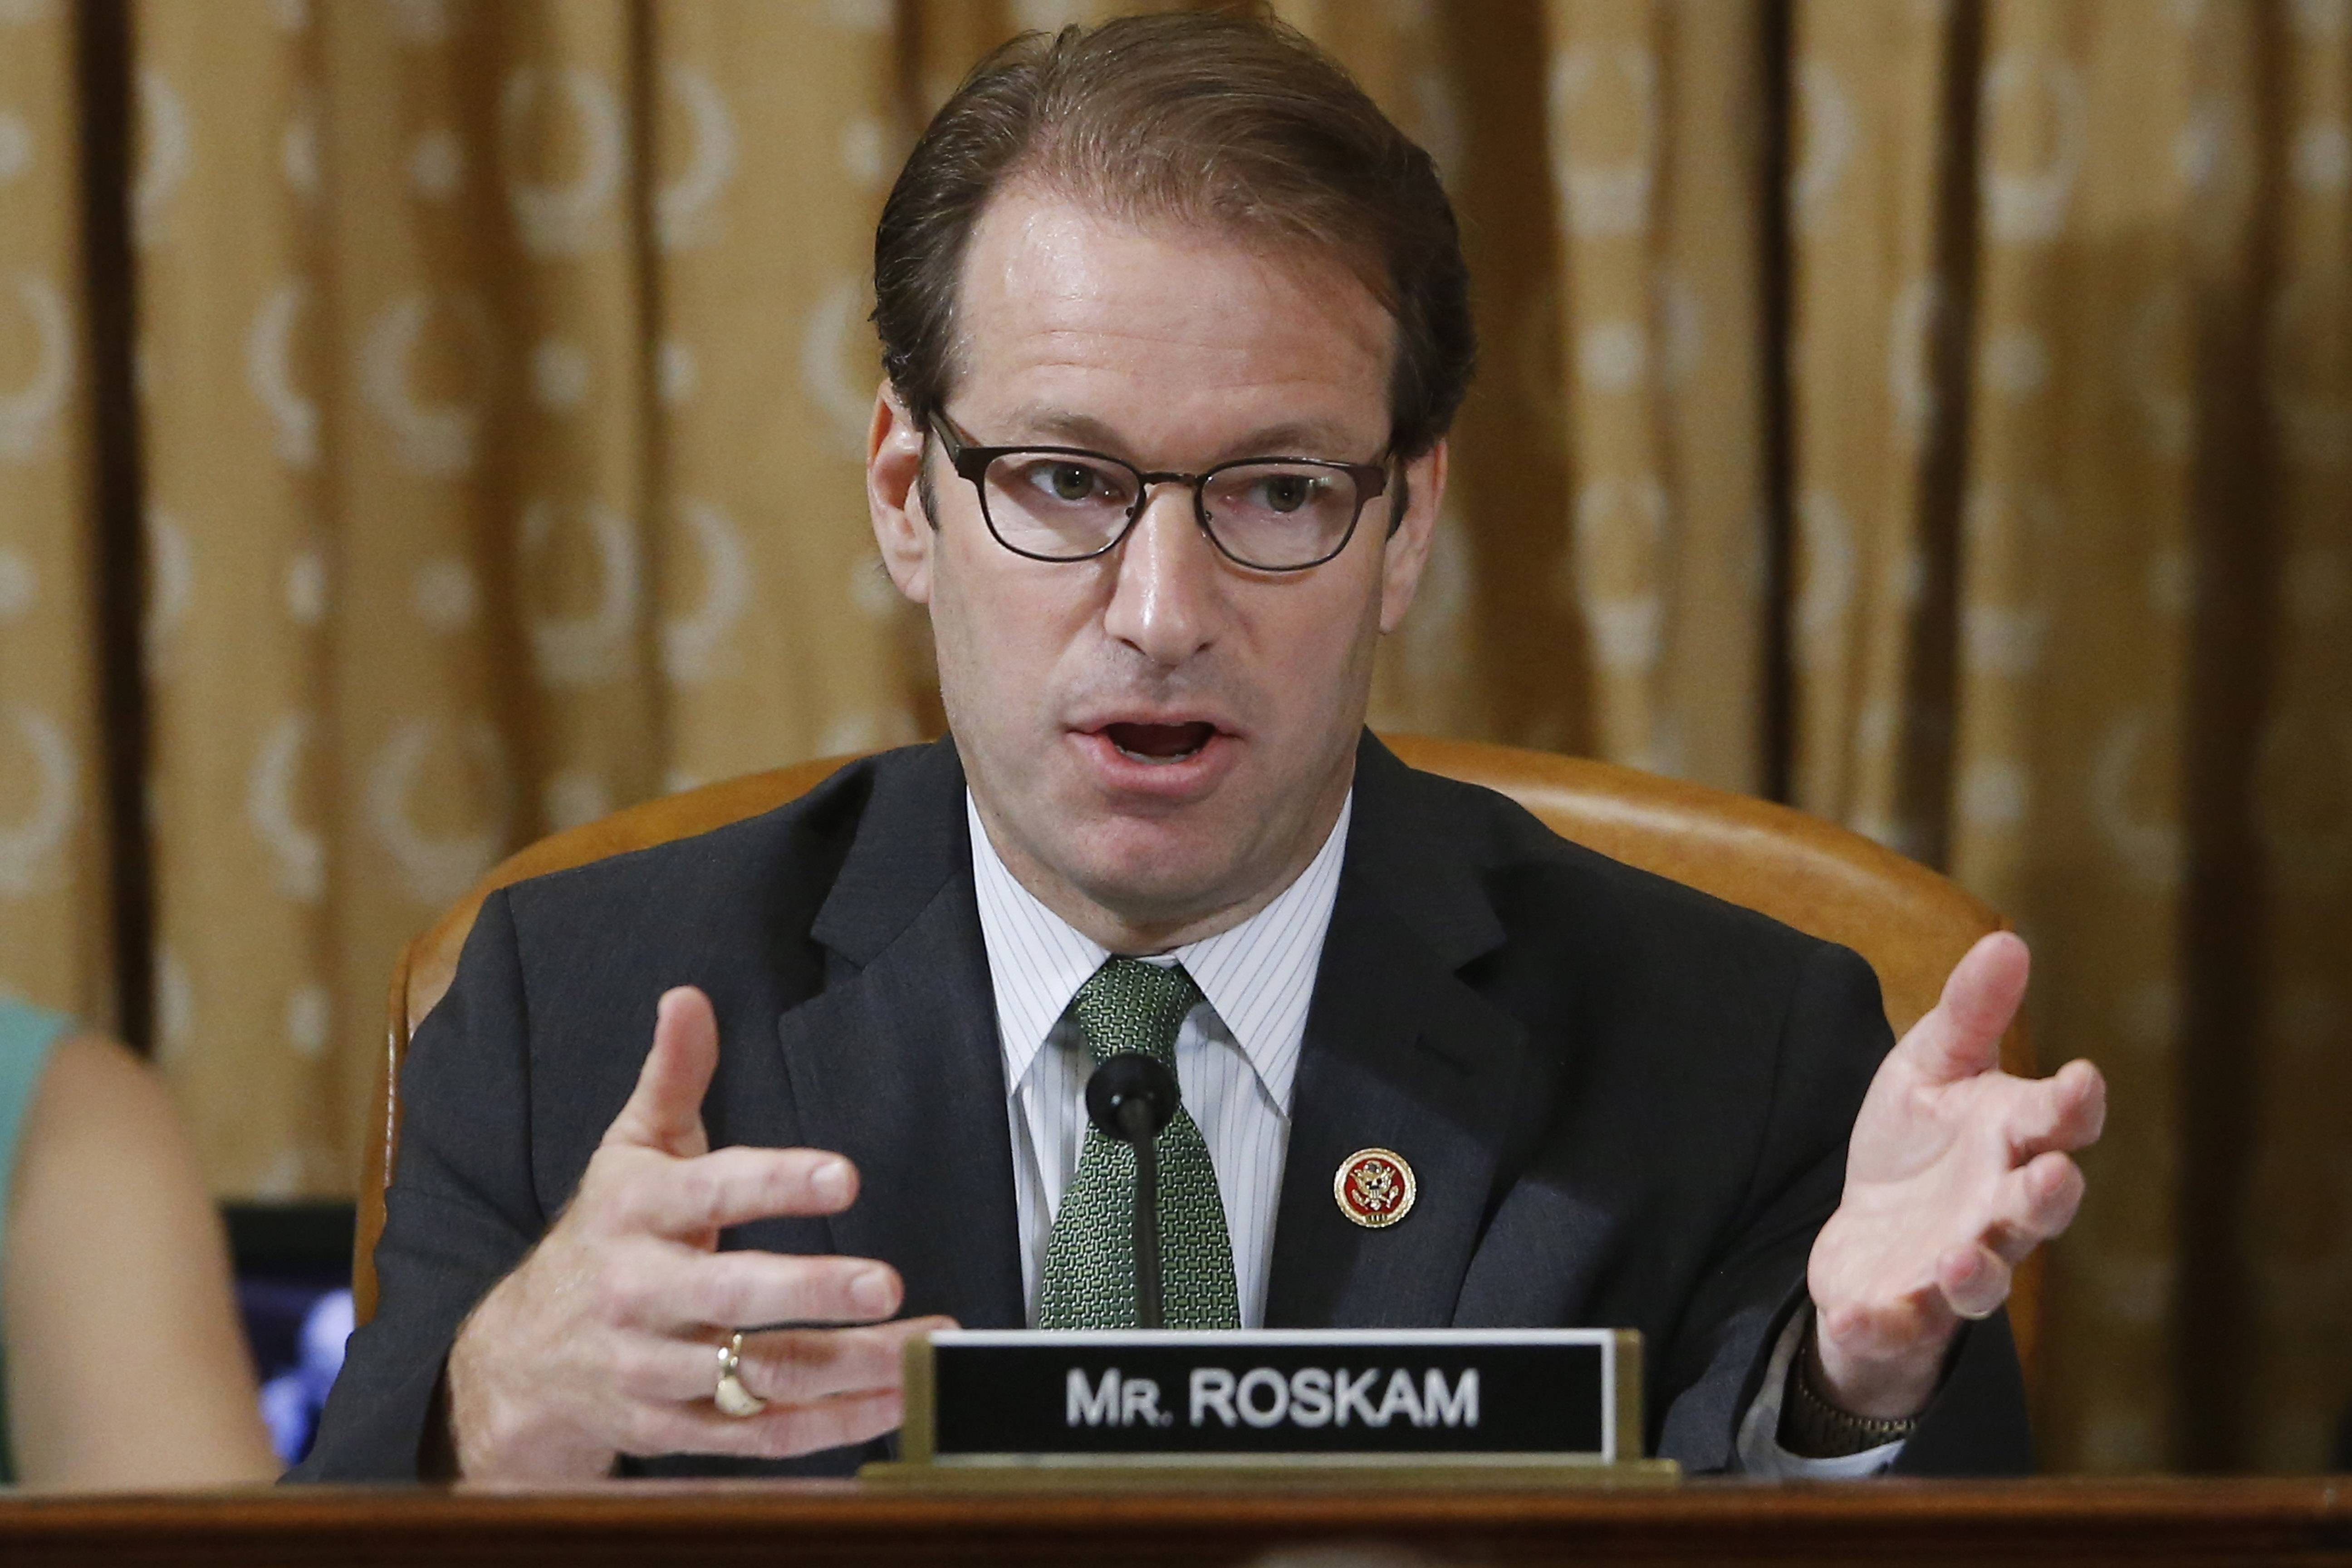 Roskam in hot race for No. 3 spot in GOP leadership